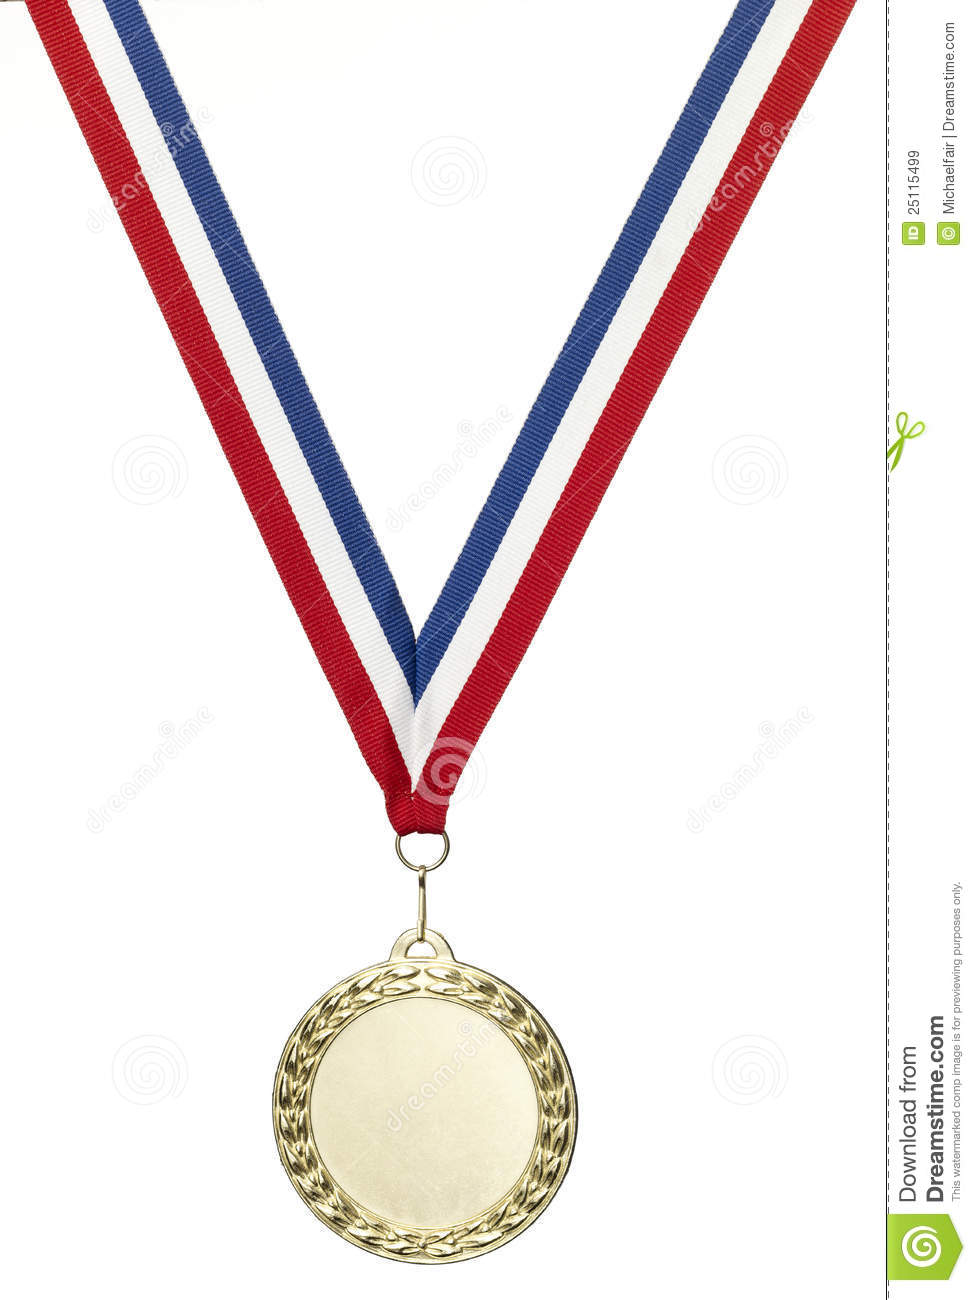 gold olympics medal blank with clipping path royalty free